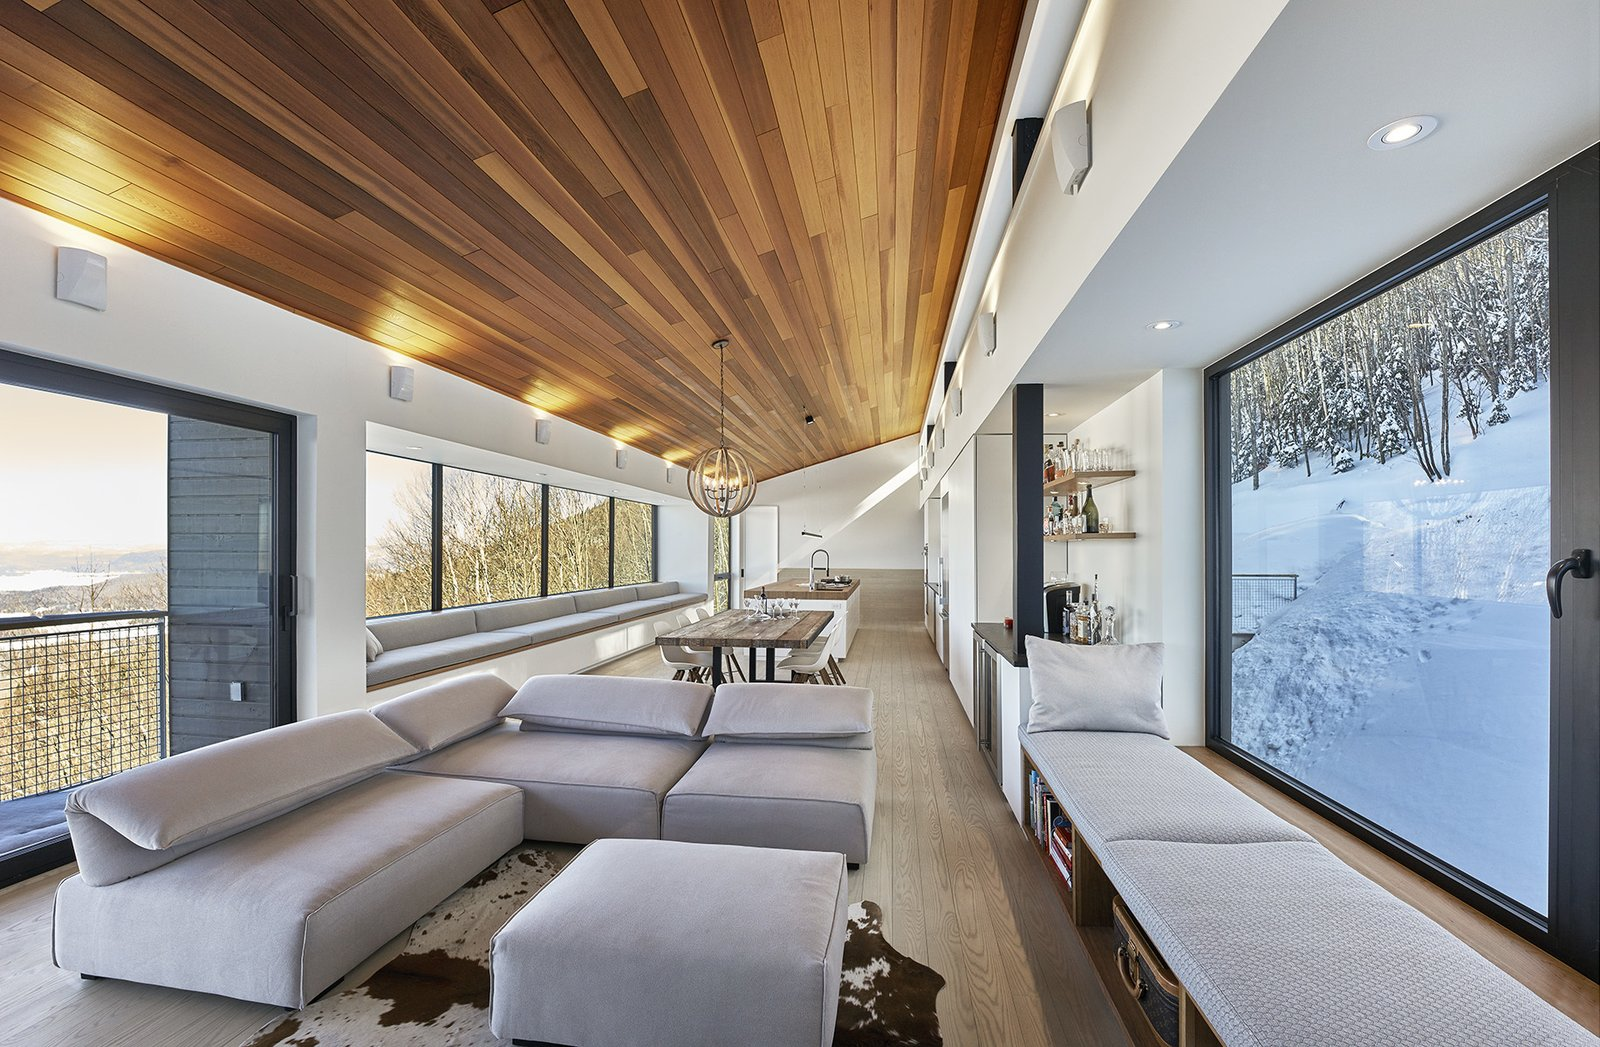 Tagged: Living Room, Bench, Sectional, Sofa, Wall Lighting, Light Hardwood Floor, Ottomans, Accent Lighting, Ceiling Lighting, Recessed Lighting, Medium Hardwood Floor, and Pendant Lighting.  Laurentian Ski Chalet by RobitailleCurtis